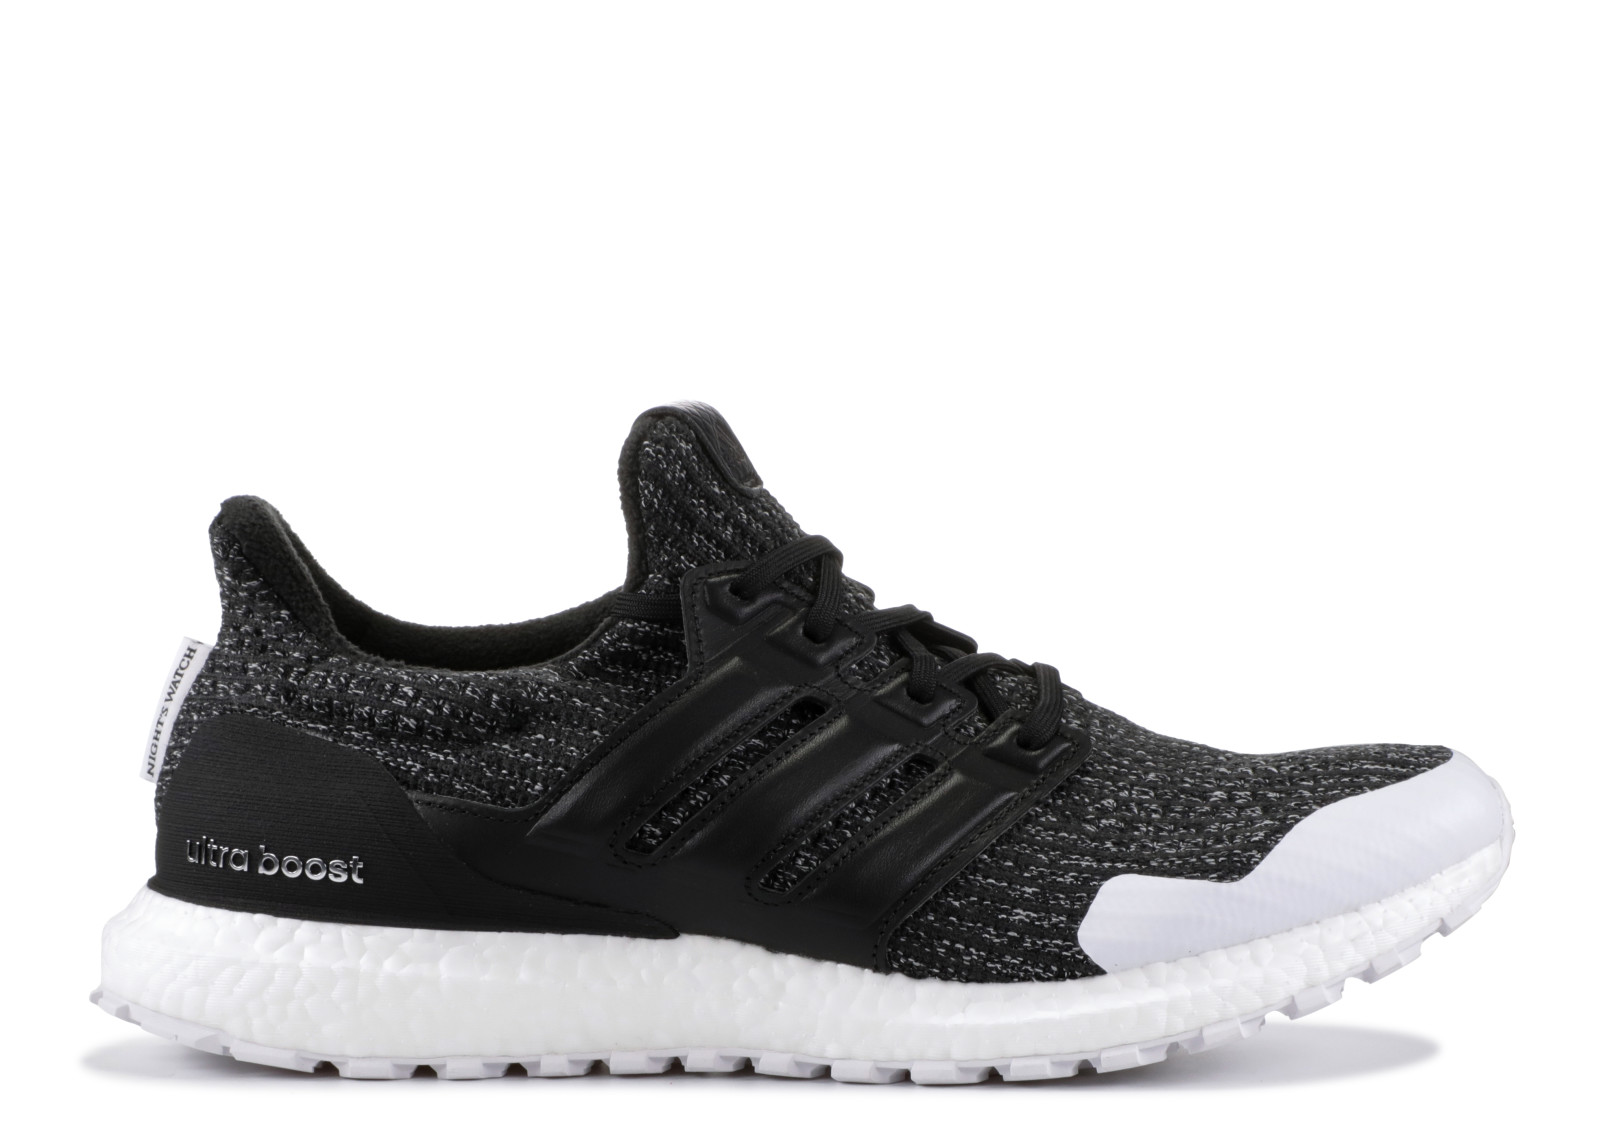 0cd9d115dbcd2 adidas Ultra Boost 4.0 Game of Thrones Nights Watch